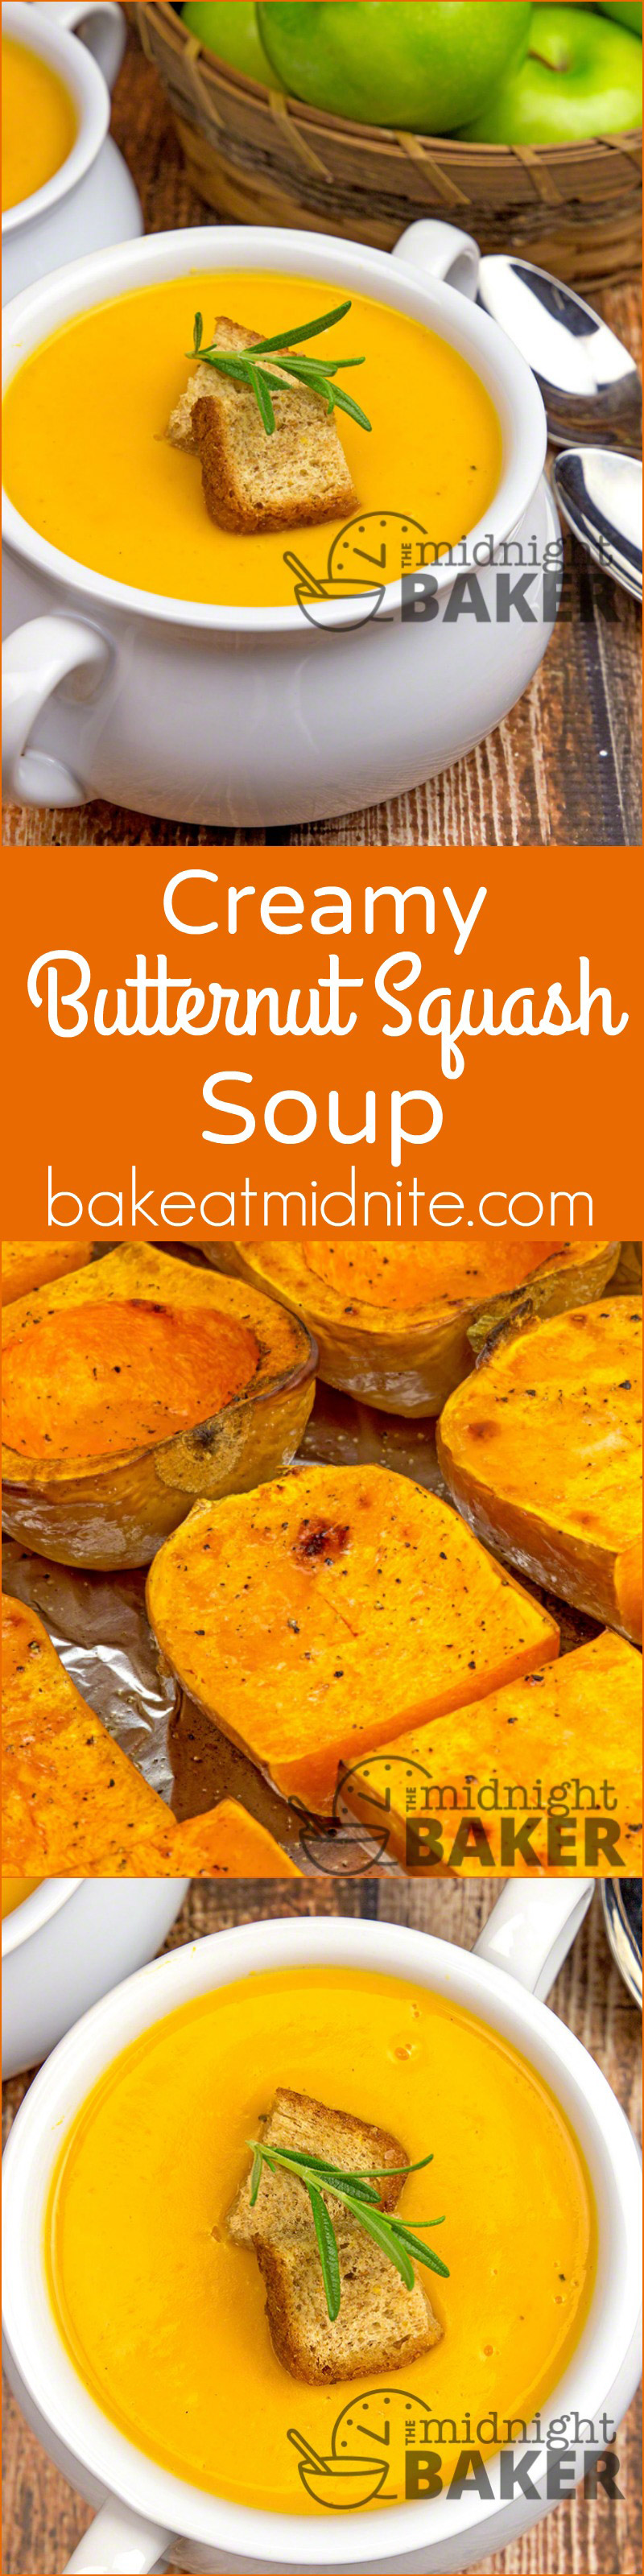 "Nothing says ""fall"" better than roasted butternut squash made into a creamy soup!"